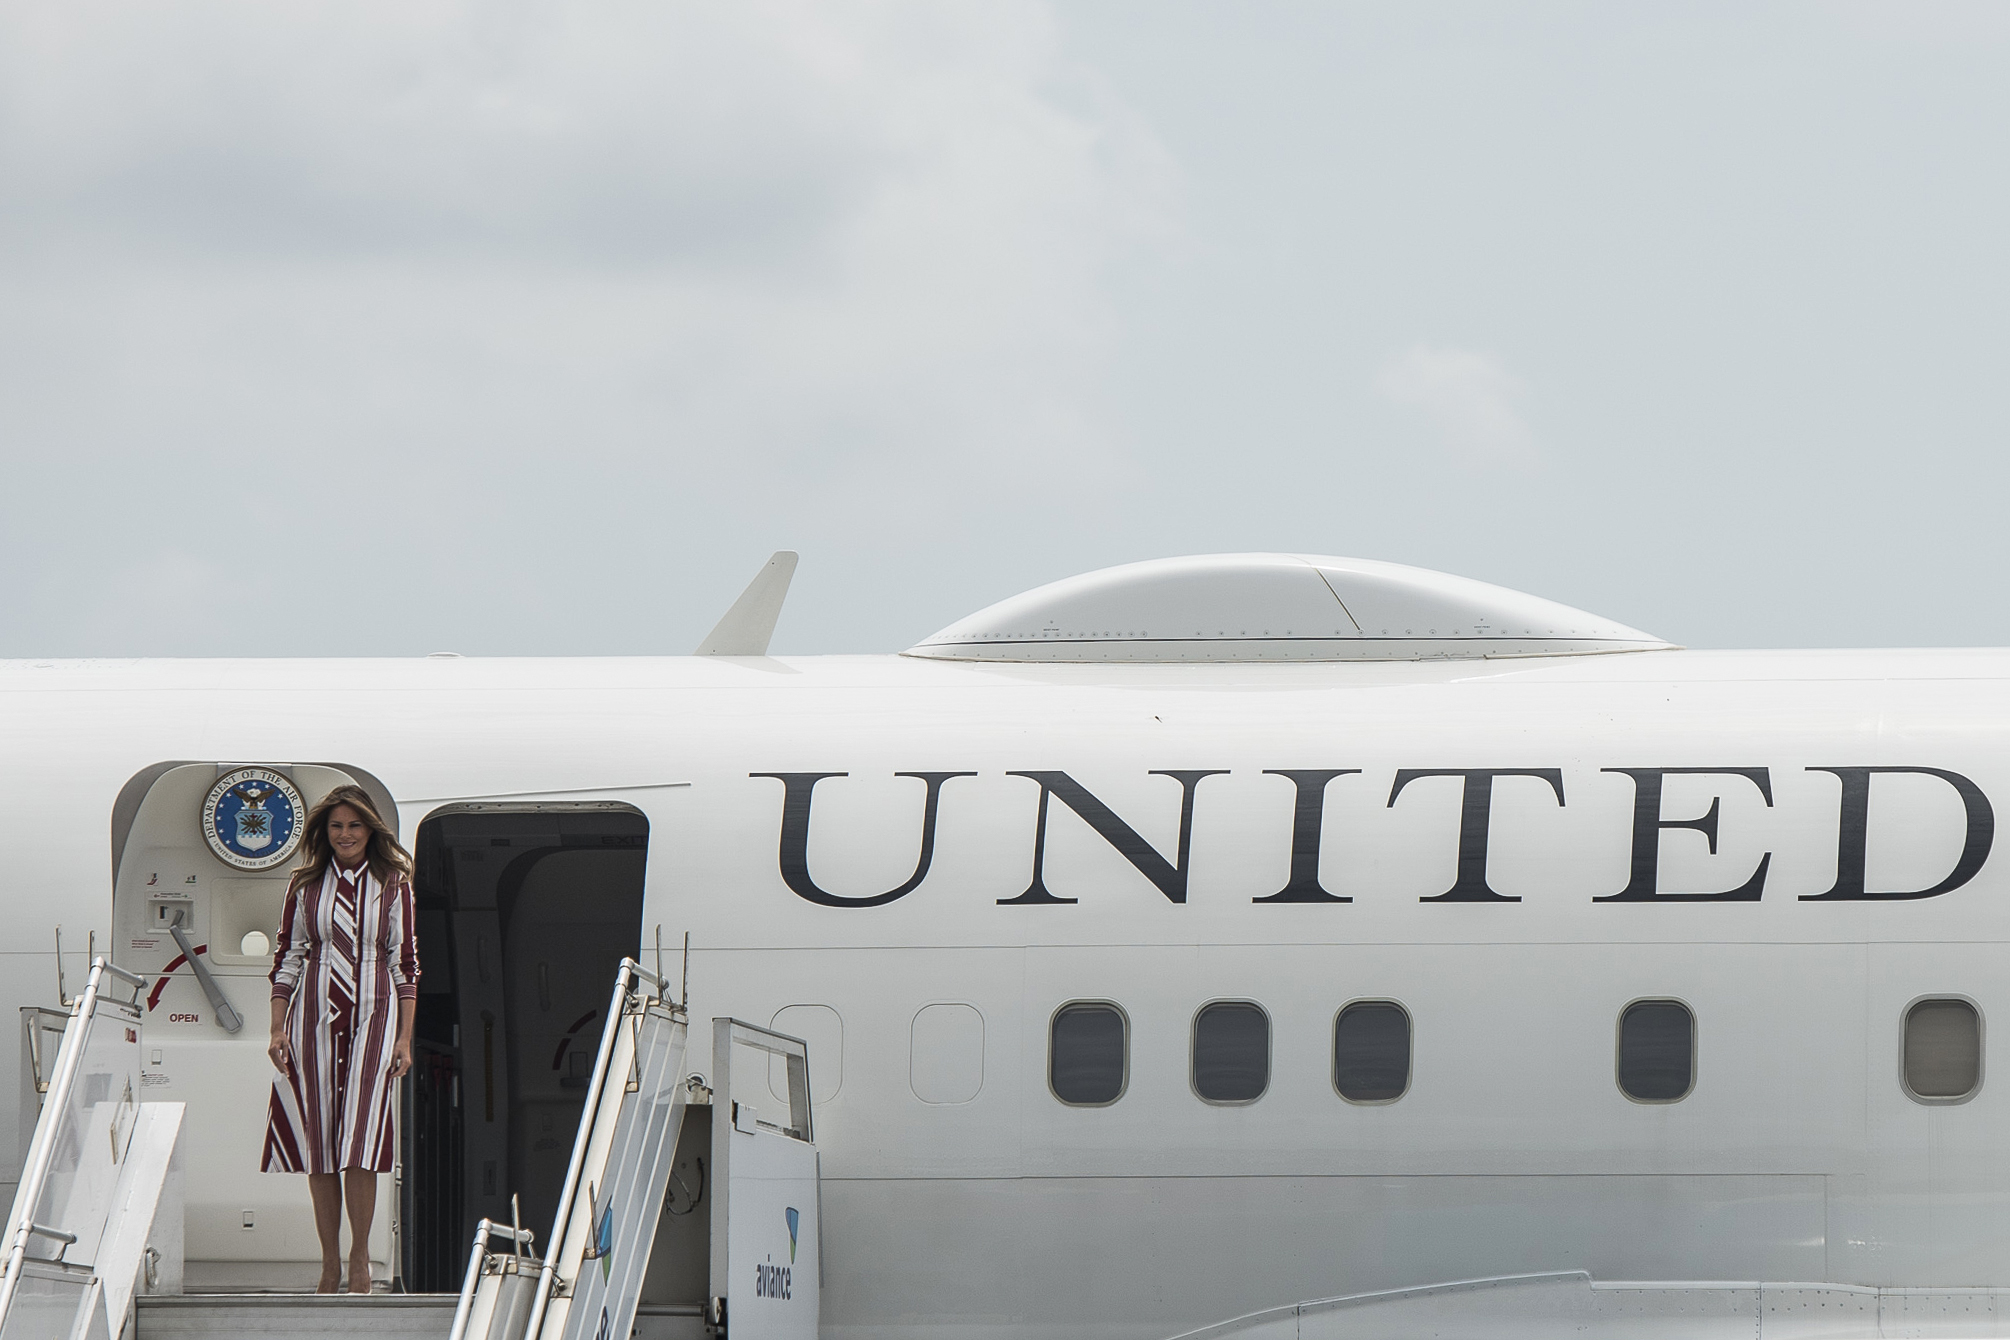 US First Lady Melania Trump disembarks from her plane after landing at Kotoka International Airport in Accra October 2, 2018. (Credit: CRISTINA ALDEHUELA/AFP/Getty Images)